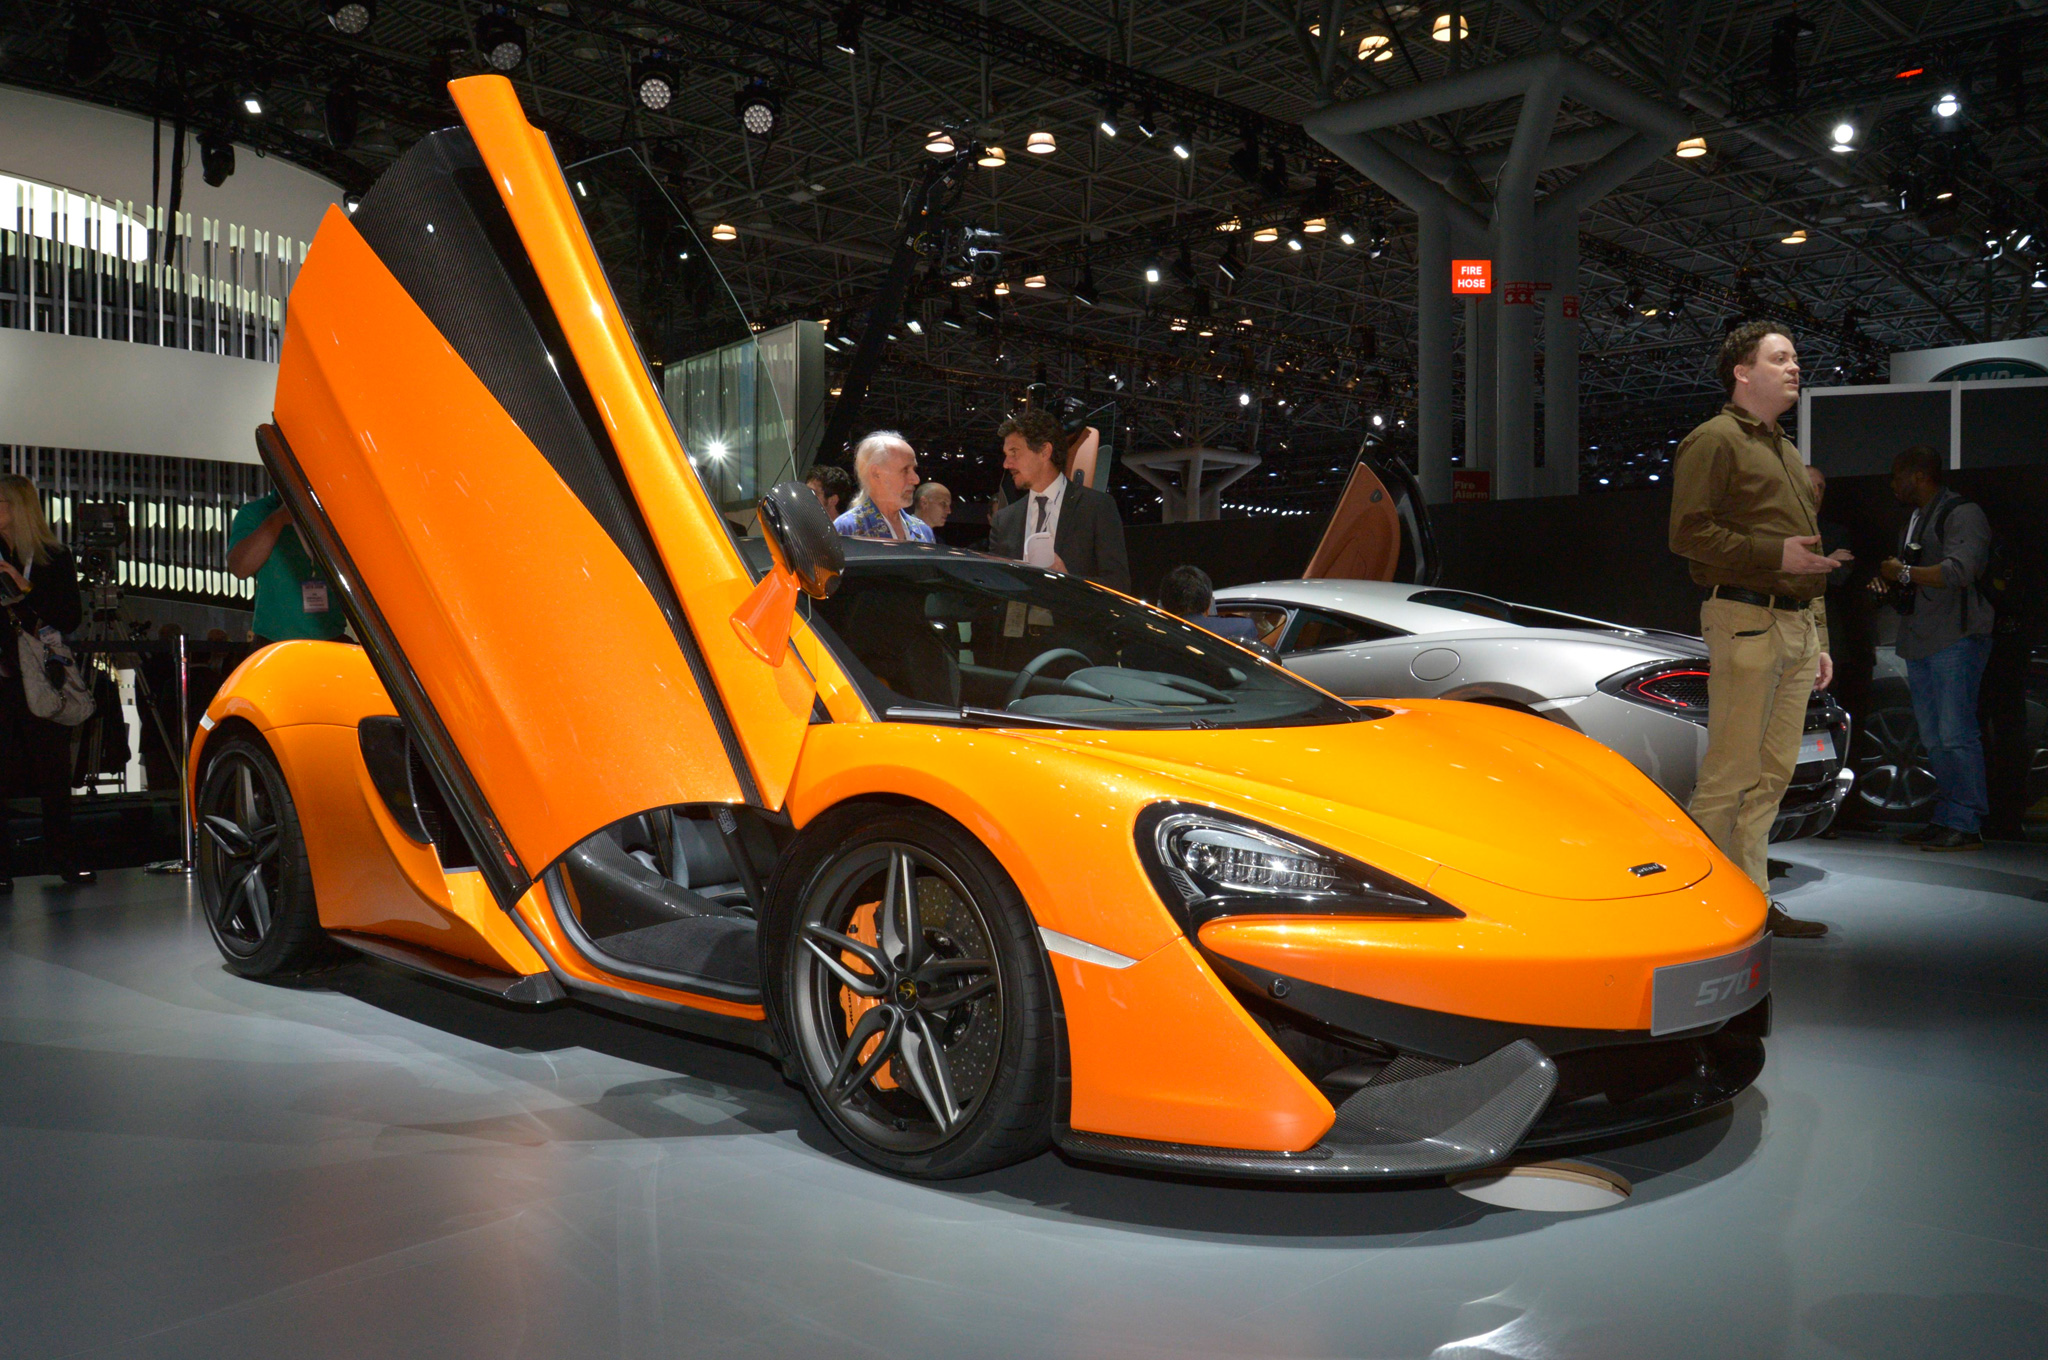 https://enthusiastnetwork.s3.amazonaws.com/uploads/sites/5/2015/03/2016-McLaren-570S-front-three-quarter.jpg?impolicy=entryimage